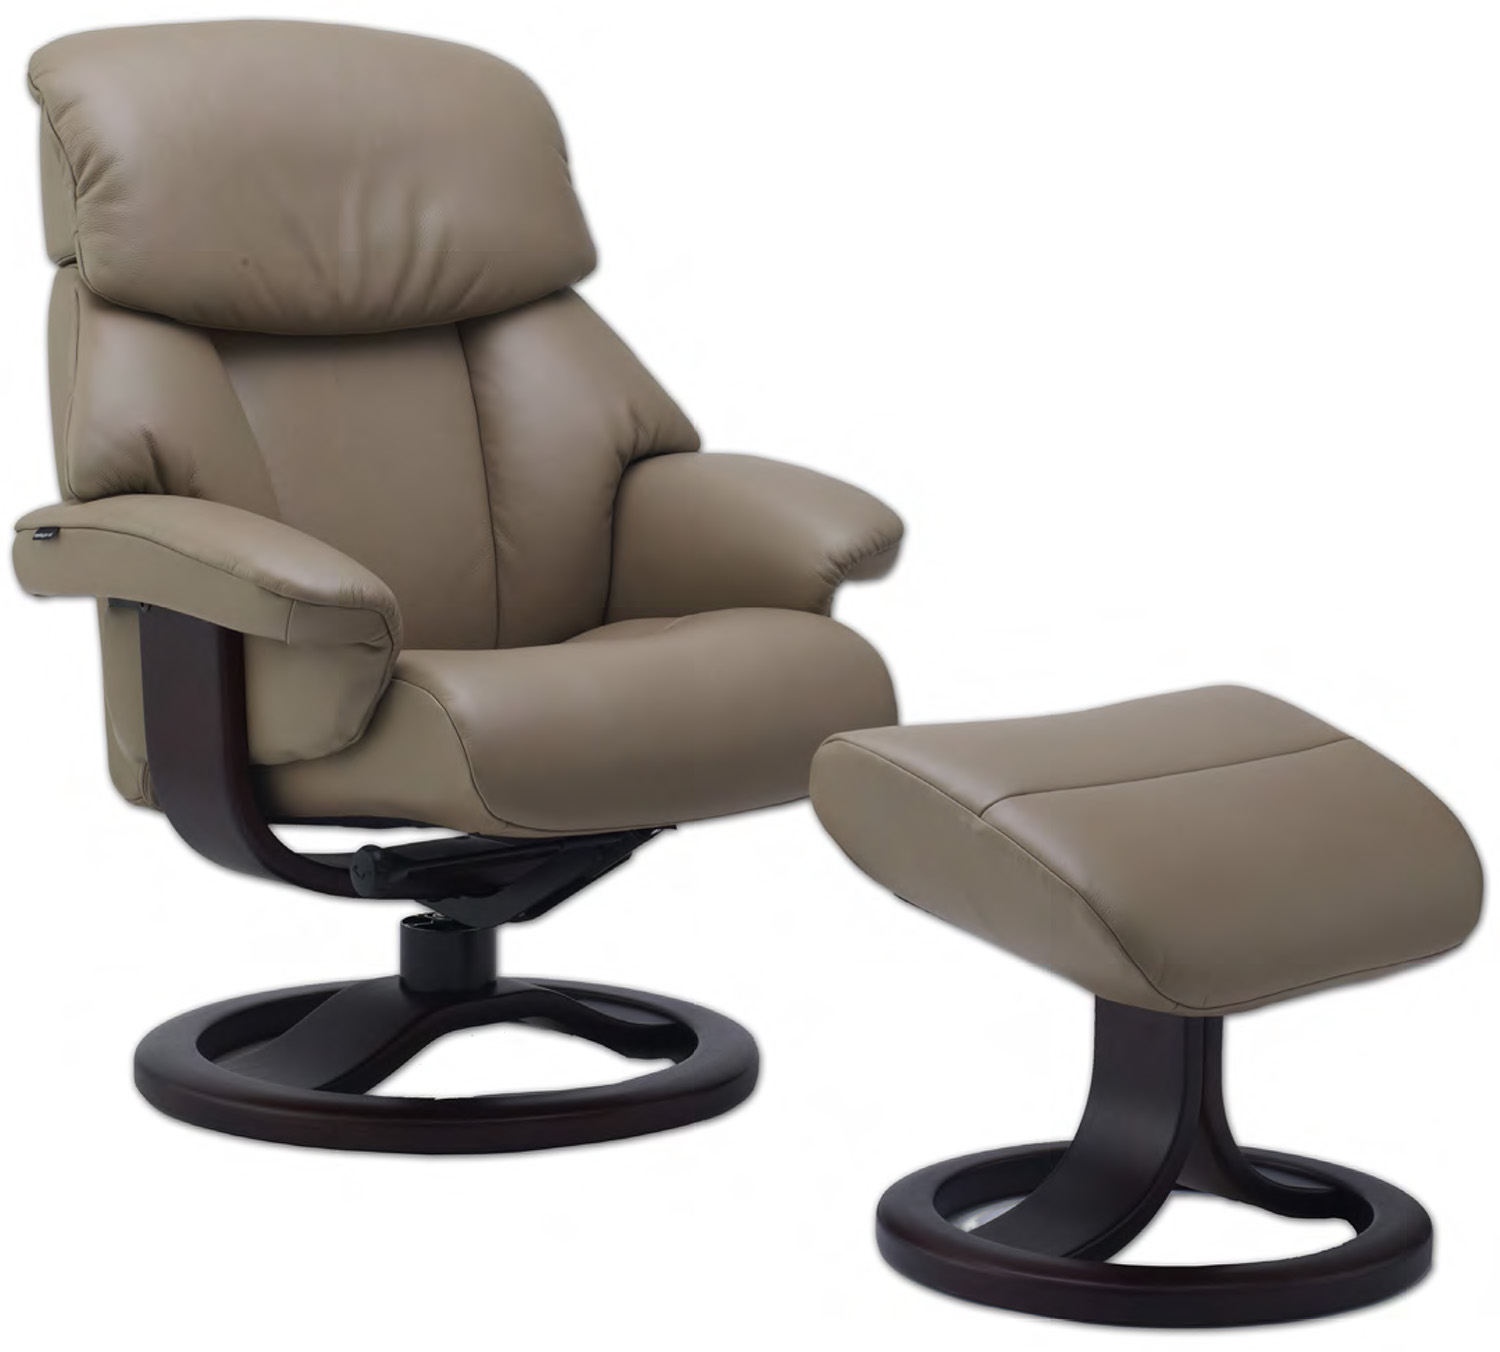 Fjords Alfa 520 Ergonomic Leather Recliner Chair and Ottoman Scandinavian Lounger  sc 1 st  Vitalityweb.com : ergonomic leather recliner - islam-shia.org